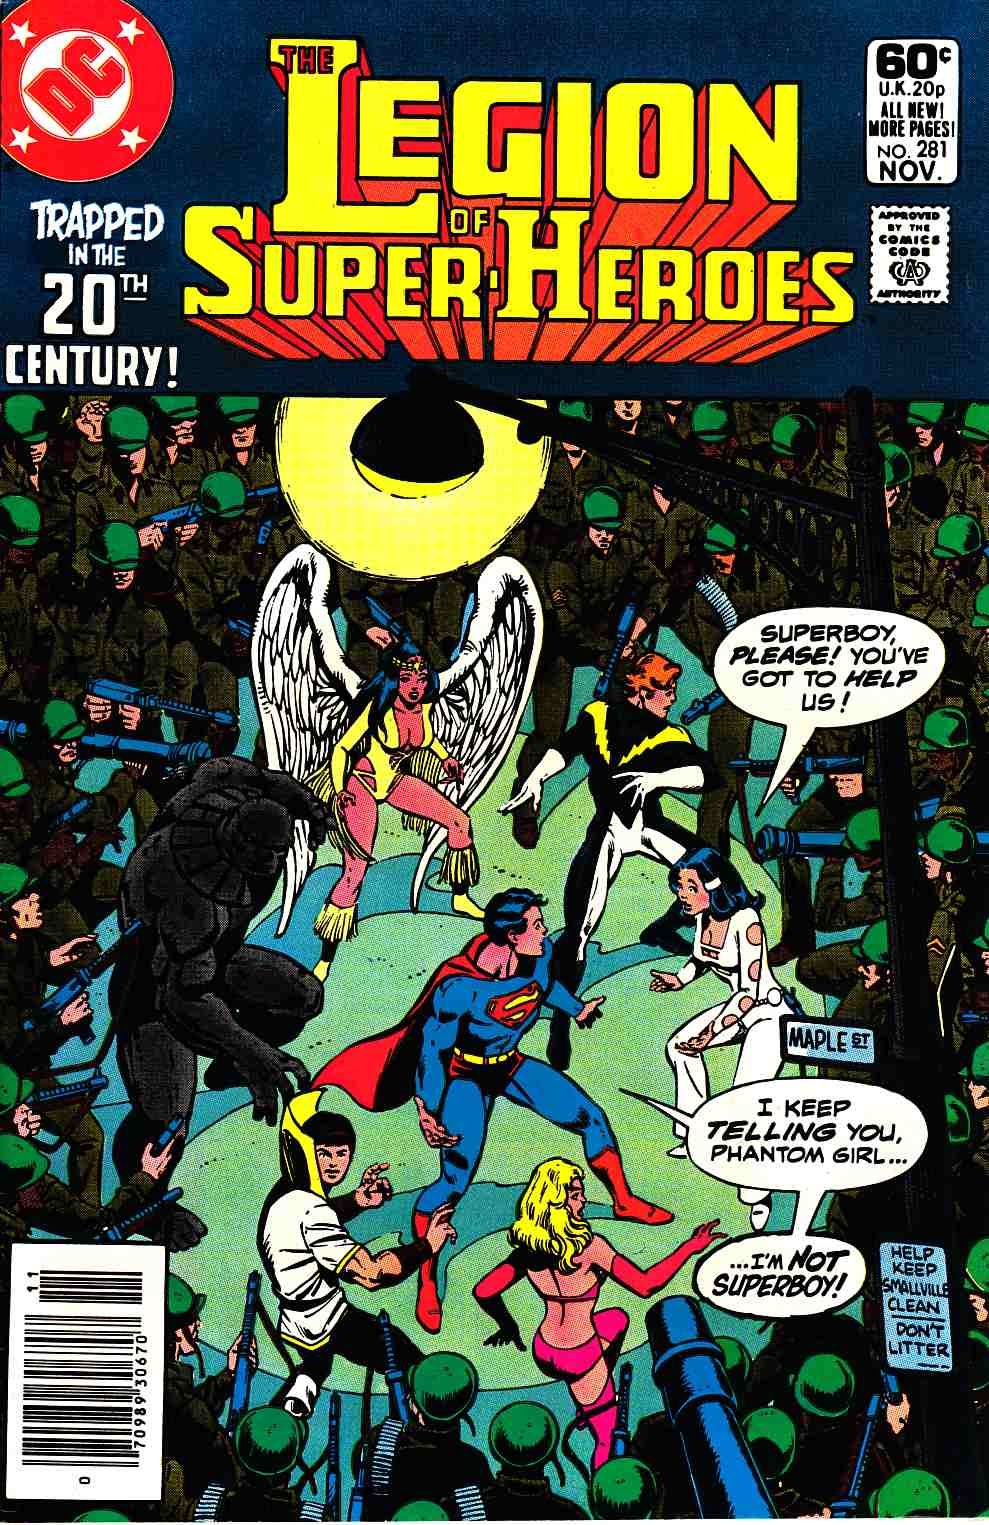 Legion of Super-Heroes #281 Newsstand Edition Very Fine (8.0) [DC Comic] THUMBNAIL